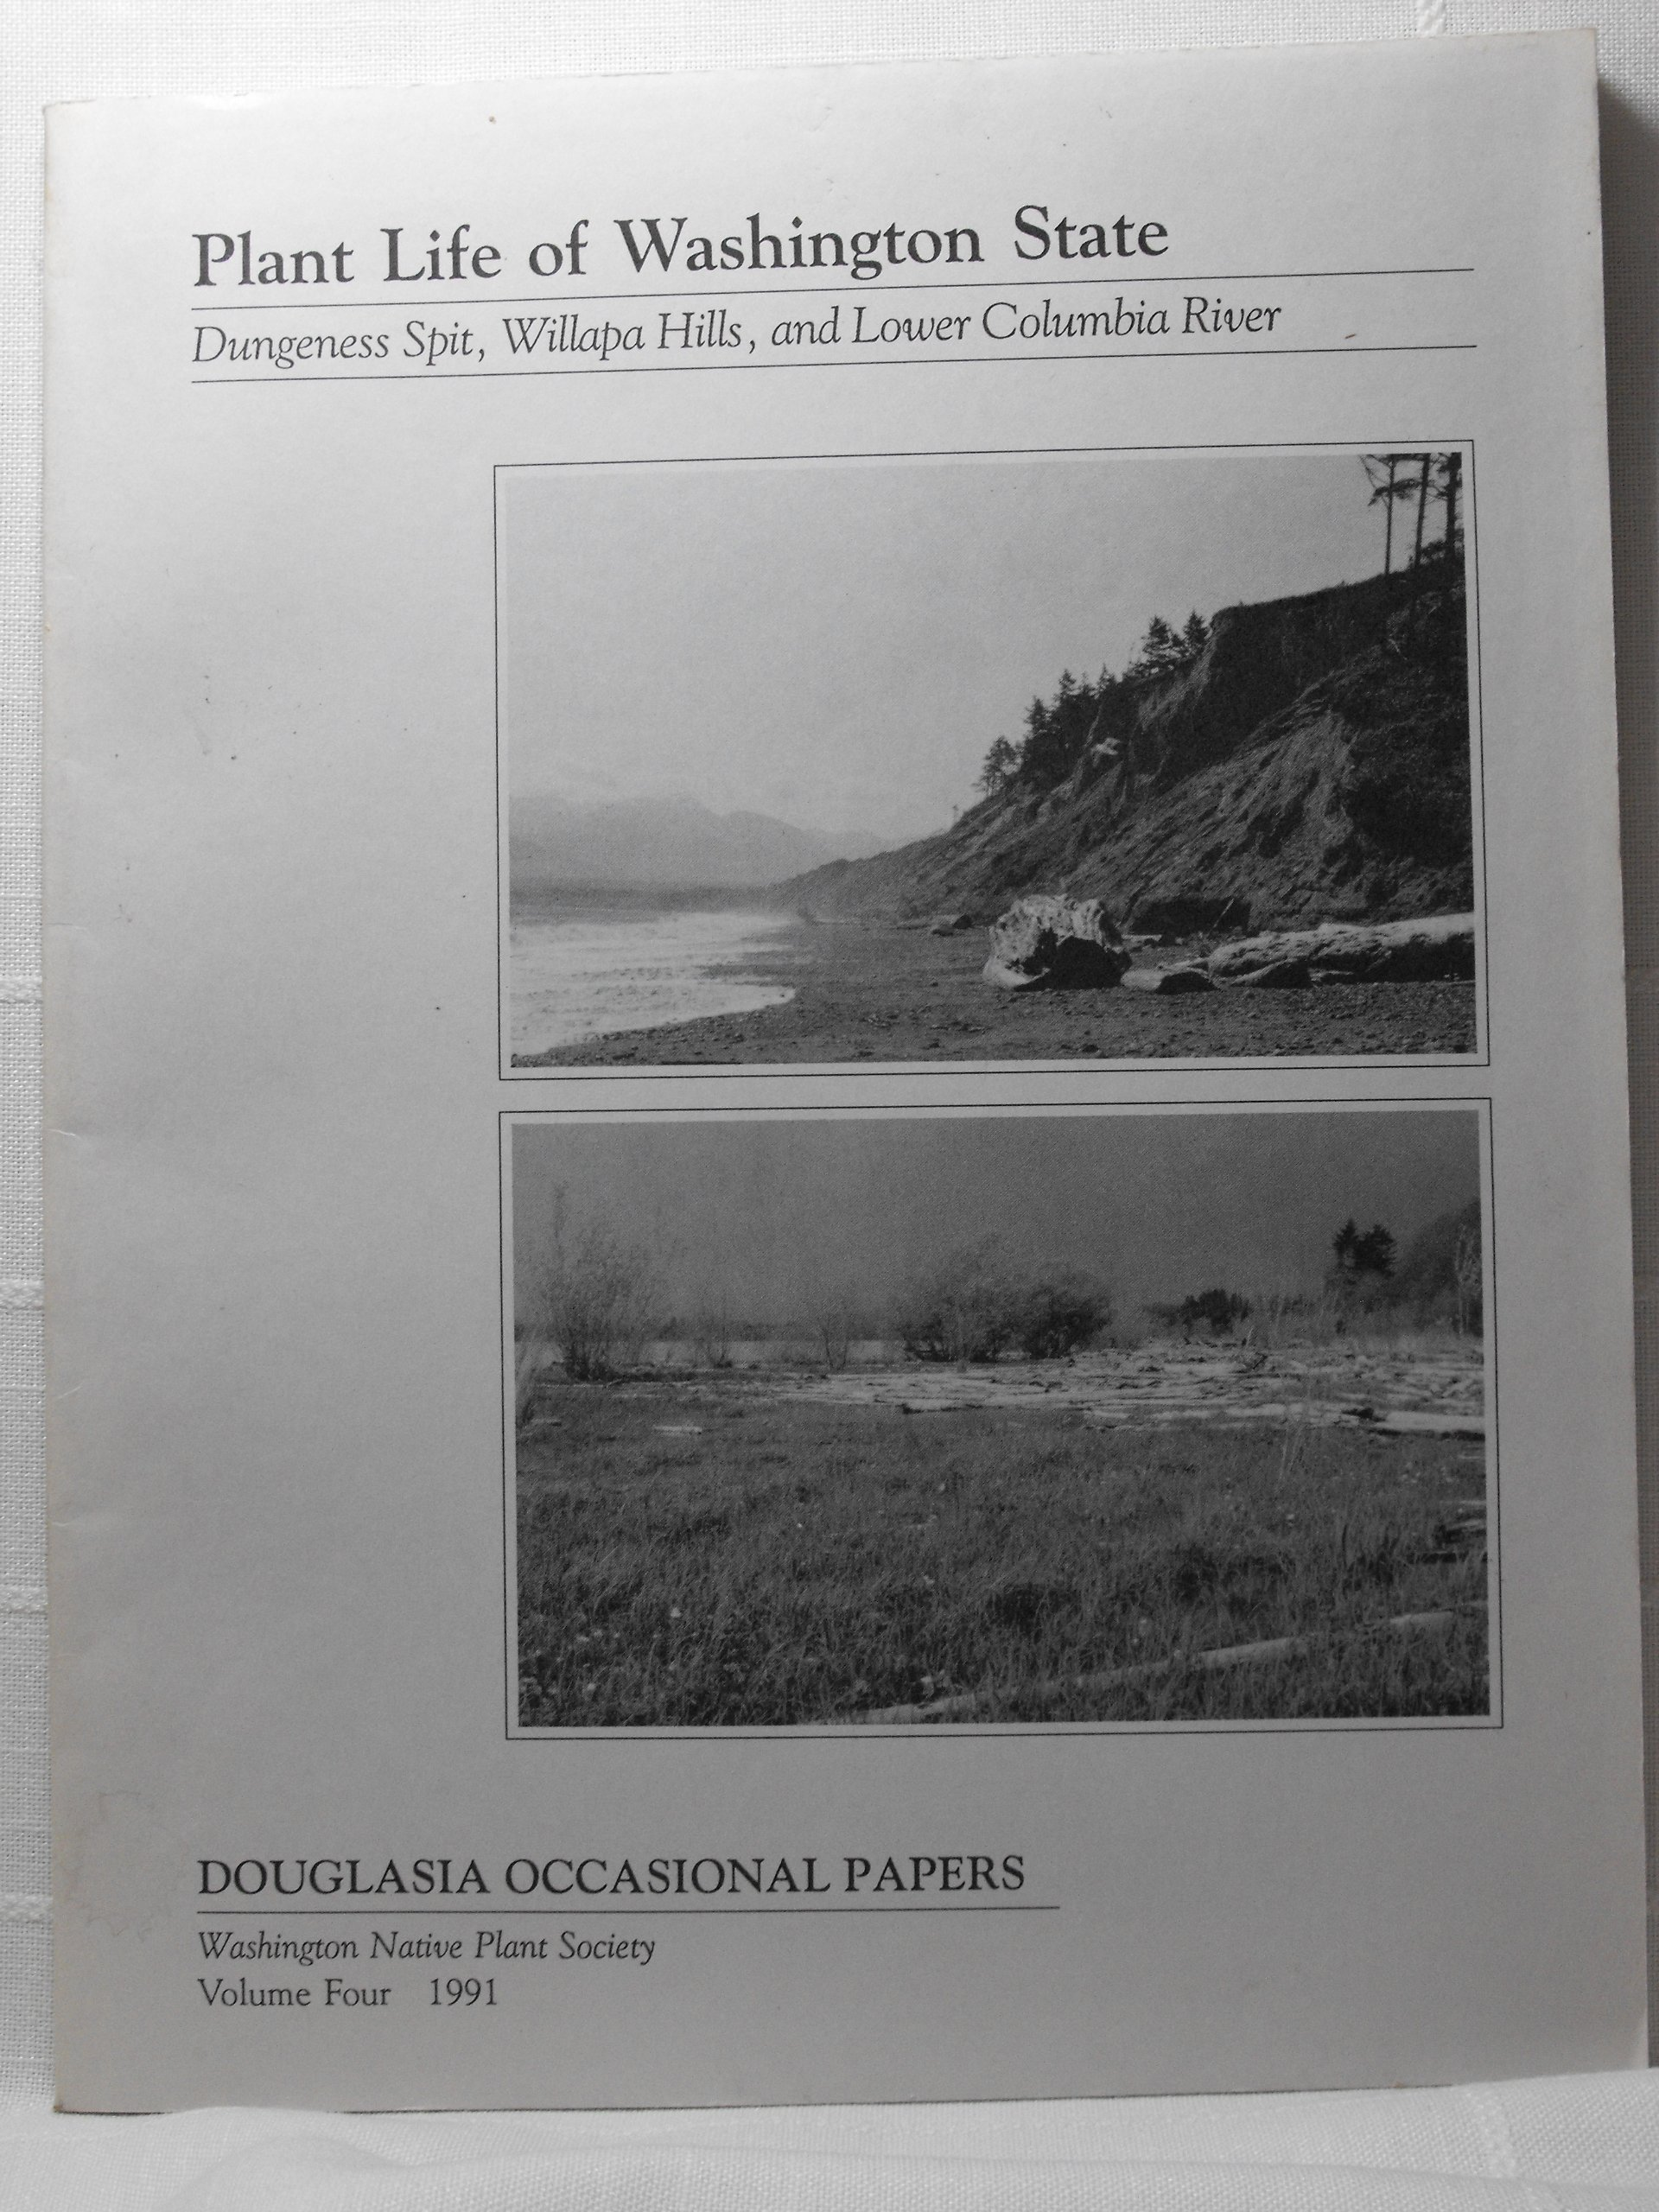 Plant Life of Washington: Dungeness Spit, Willapa Hills, and Lower Columbia River - Vol Four 1991, Kaye, Thomas N. ; Maxwell, Cathy L.